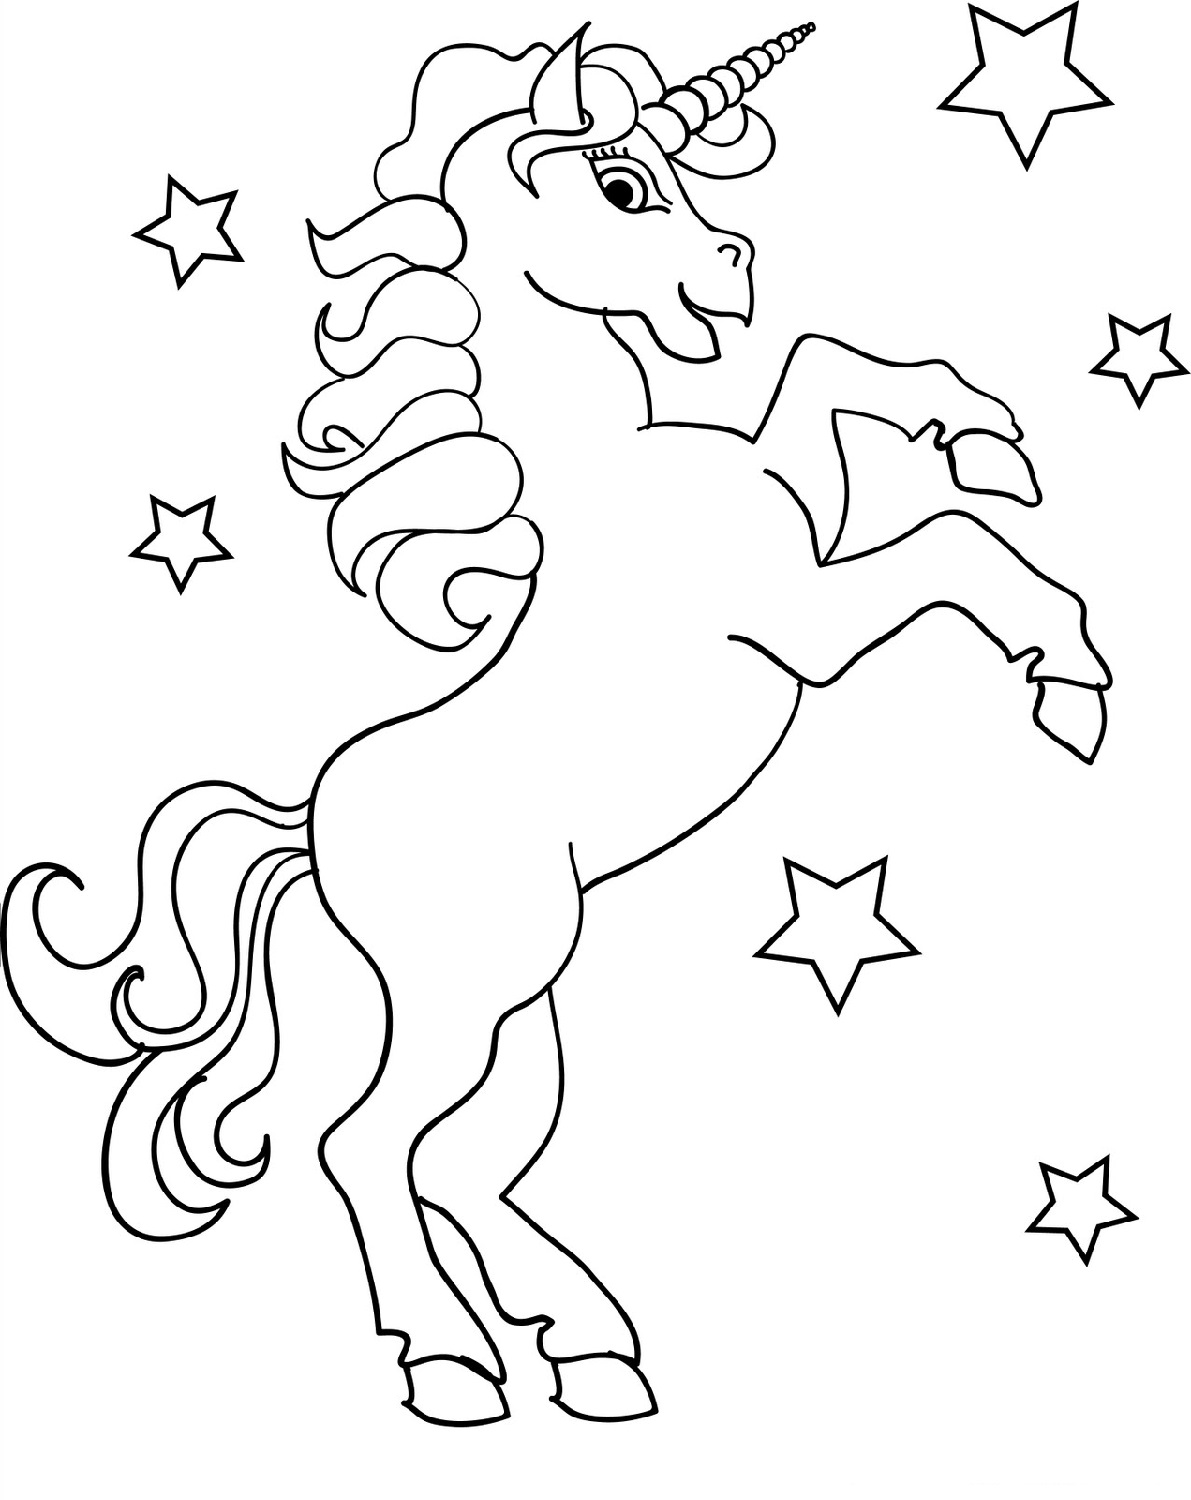 unicorn to color free printable unicorn coloring pages for kids to unicorn color 1 1